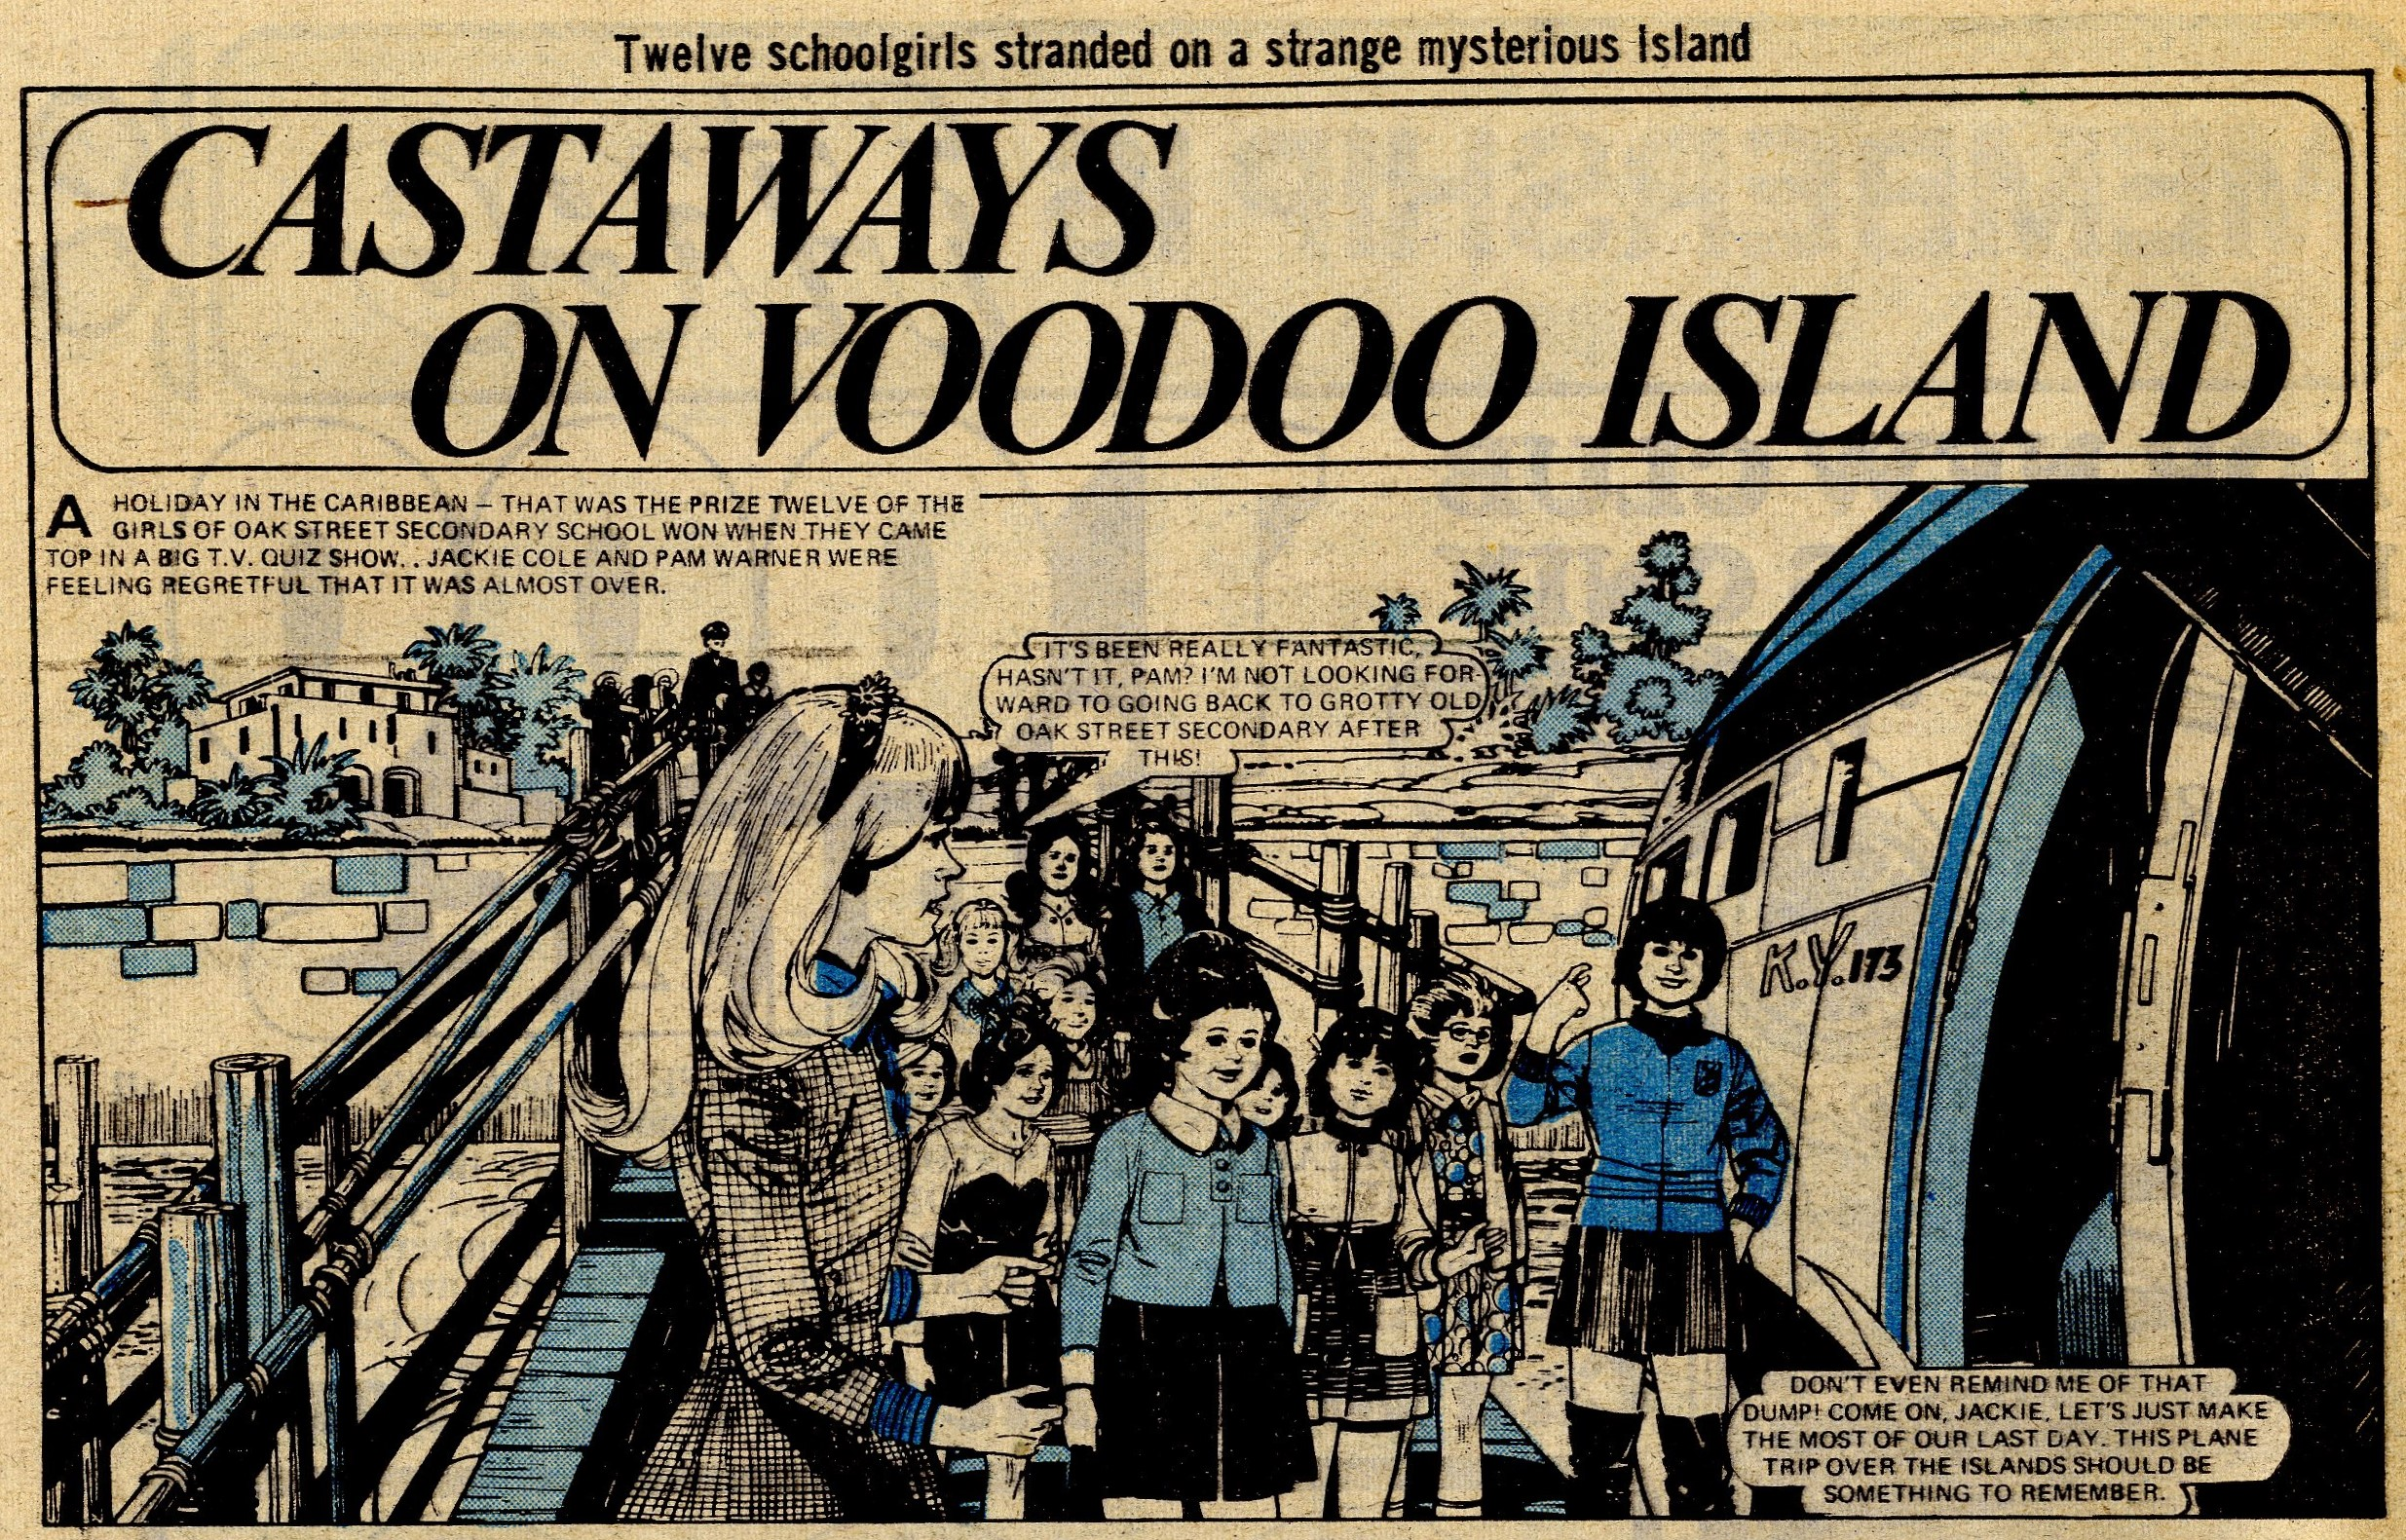 Castaways on Voodoo Island: Ken Houghton (artist)